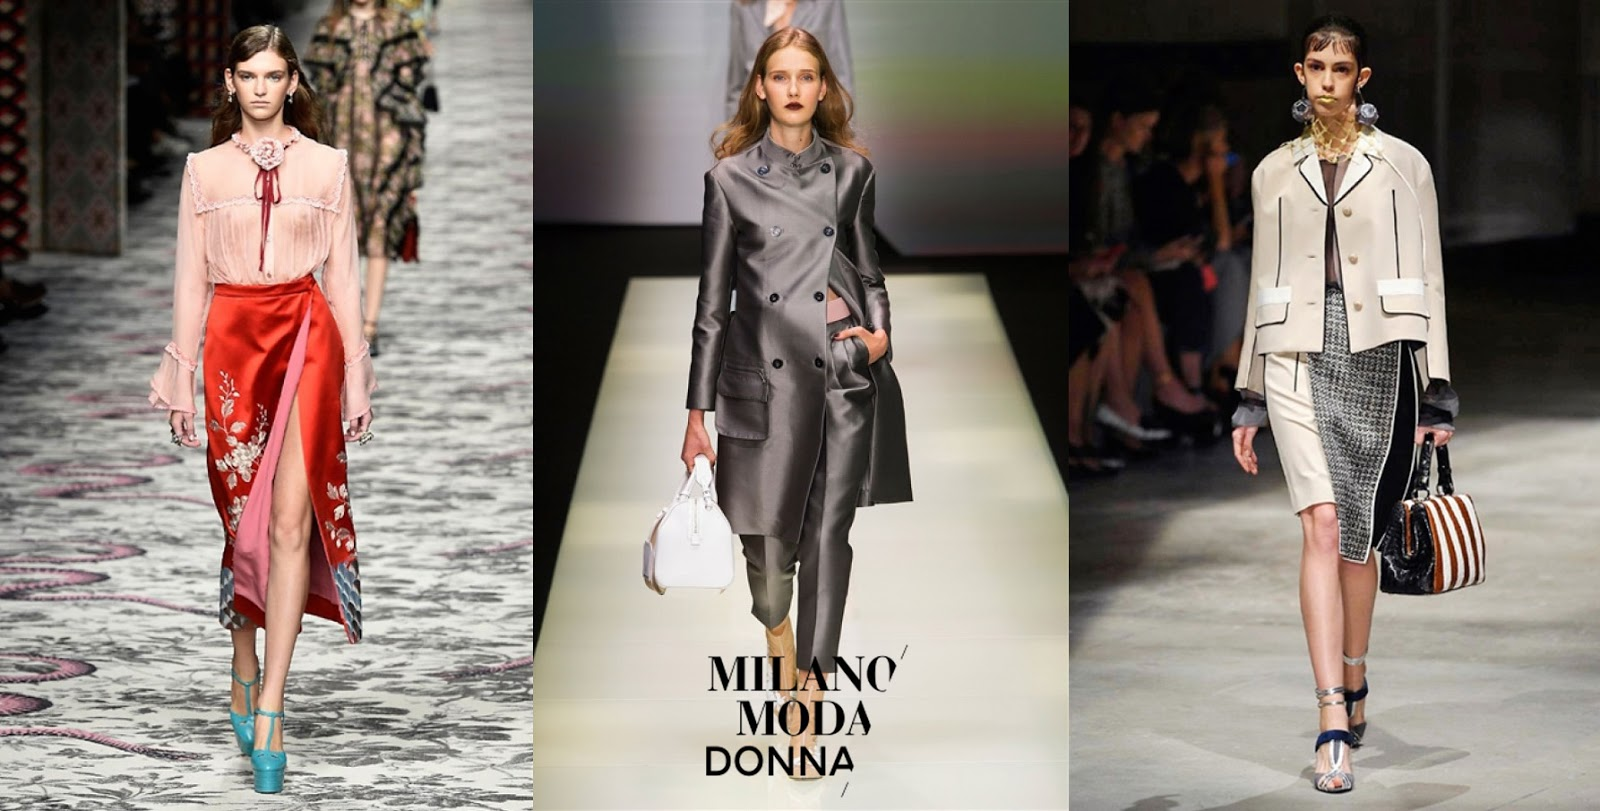 Eniwhere Fashion - Milano Fashion Week - Milano Moda Donna